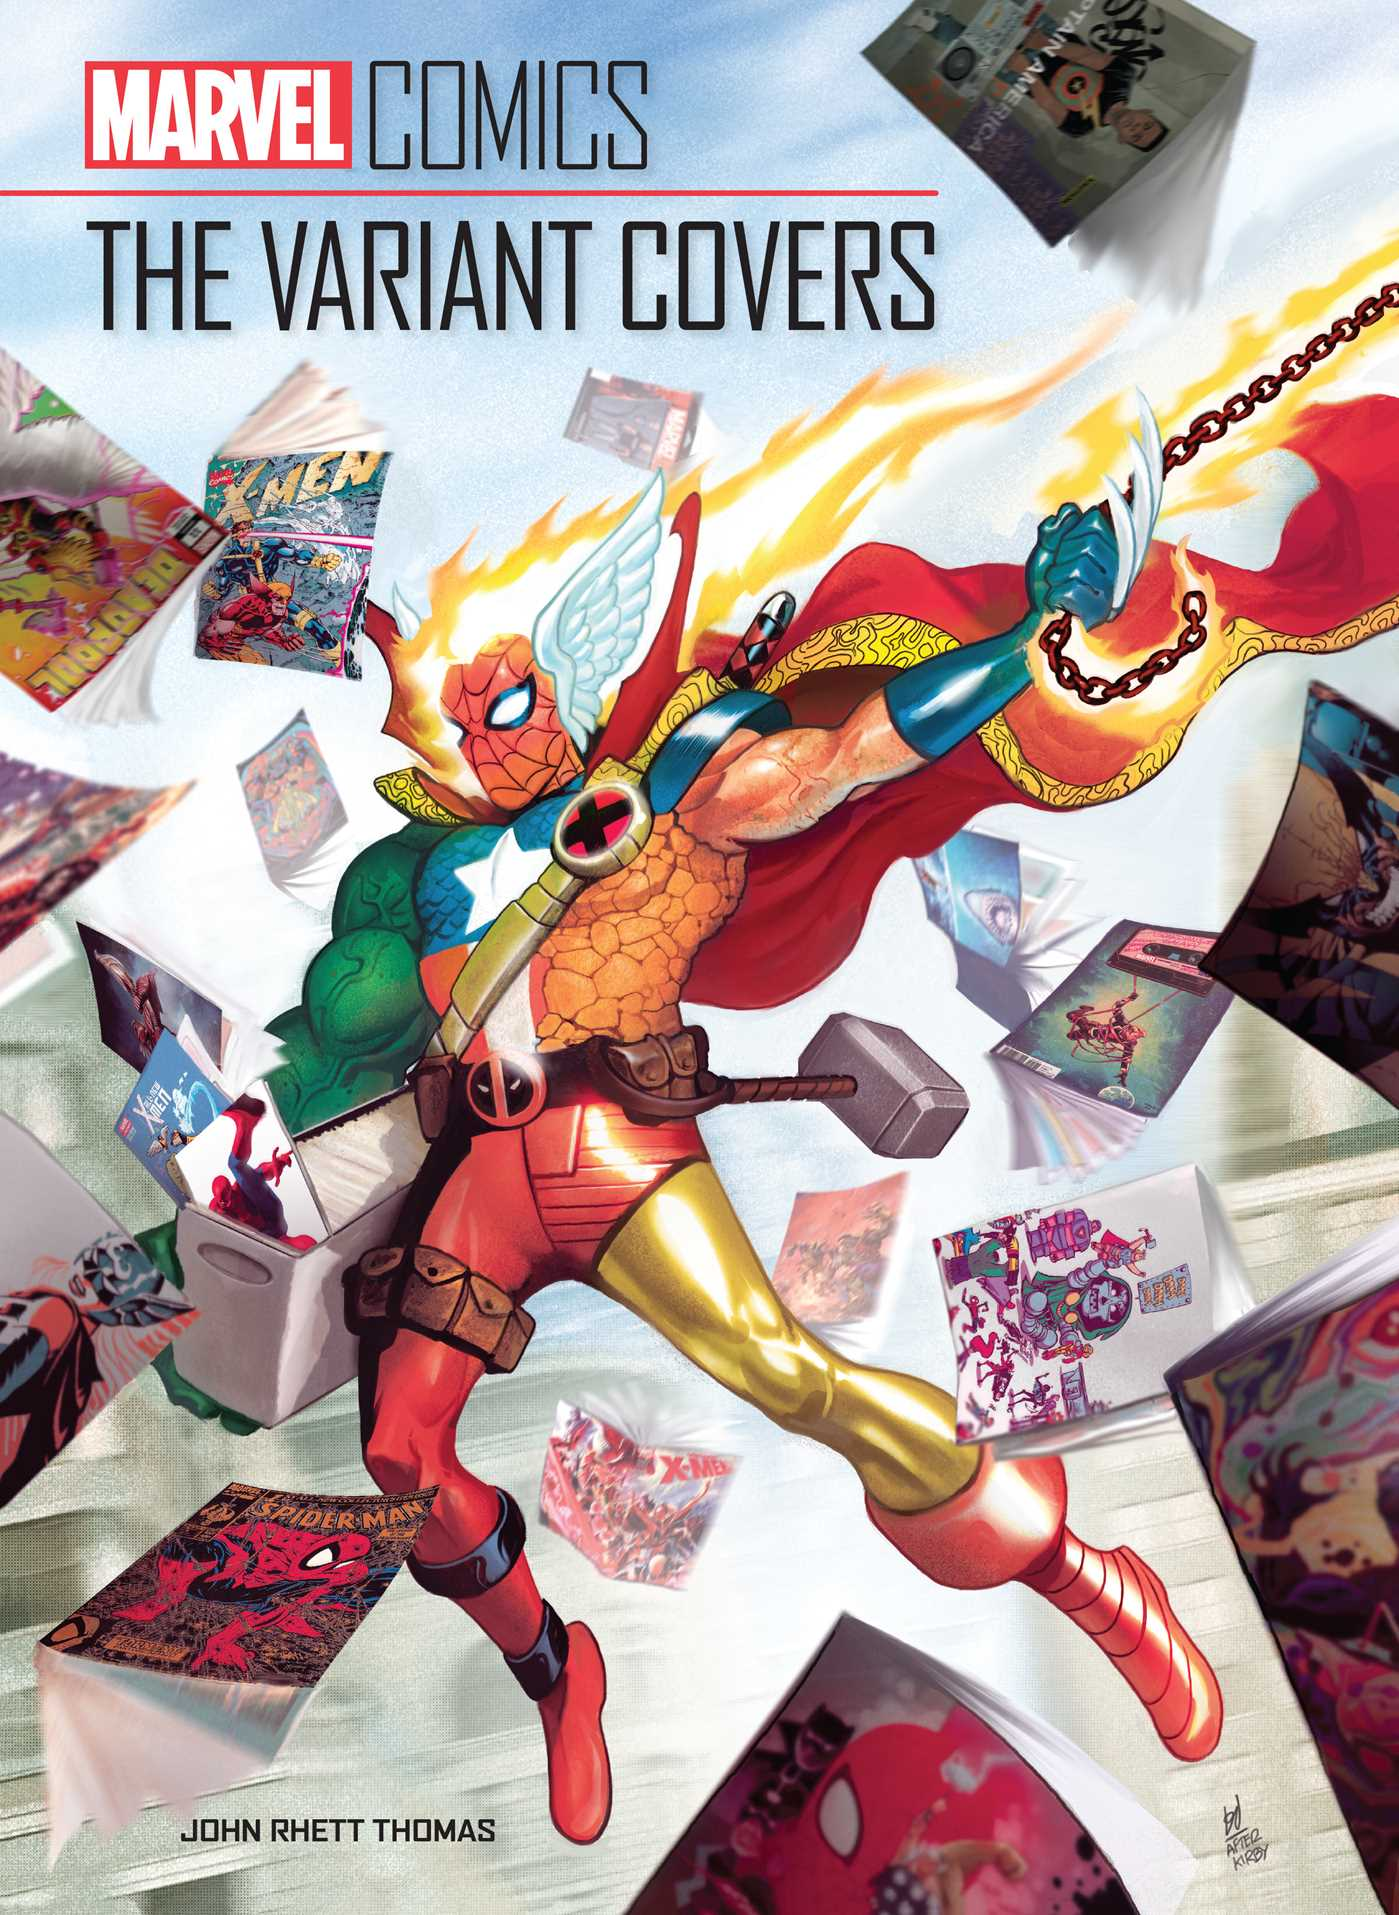 Marvel Comics: The Variant Covers